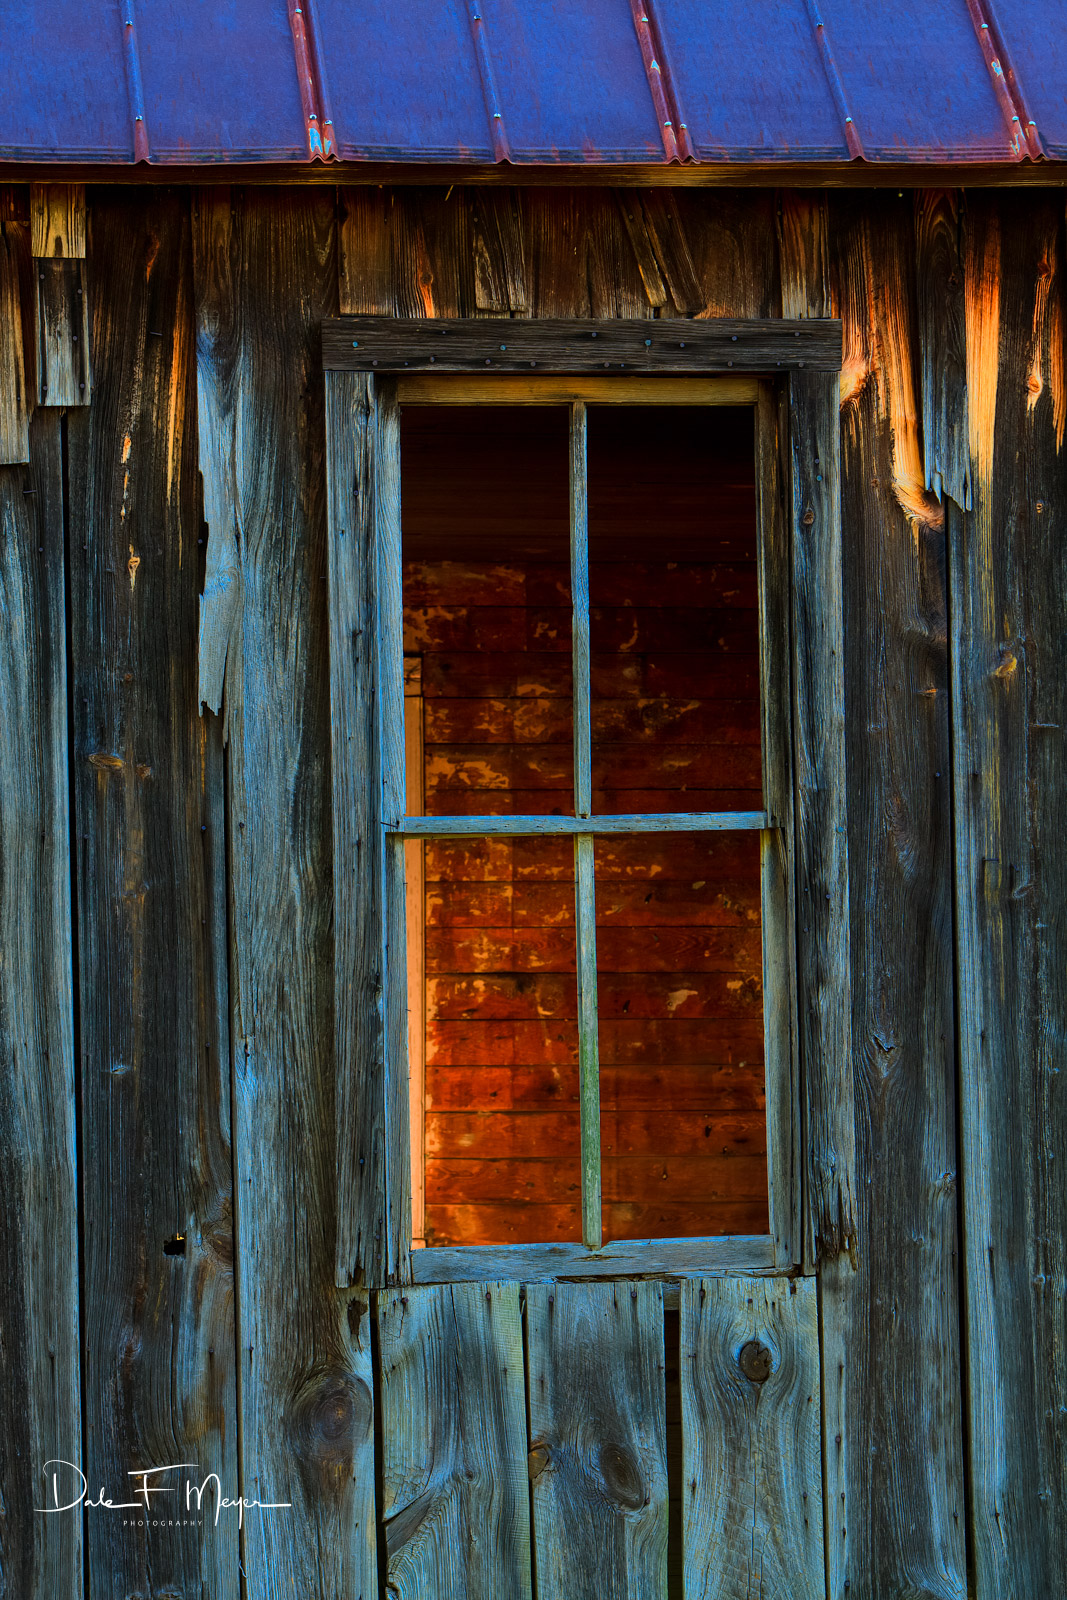 a time gone by gallerie, old house and window, rural Arkansas, vertical, photo